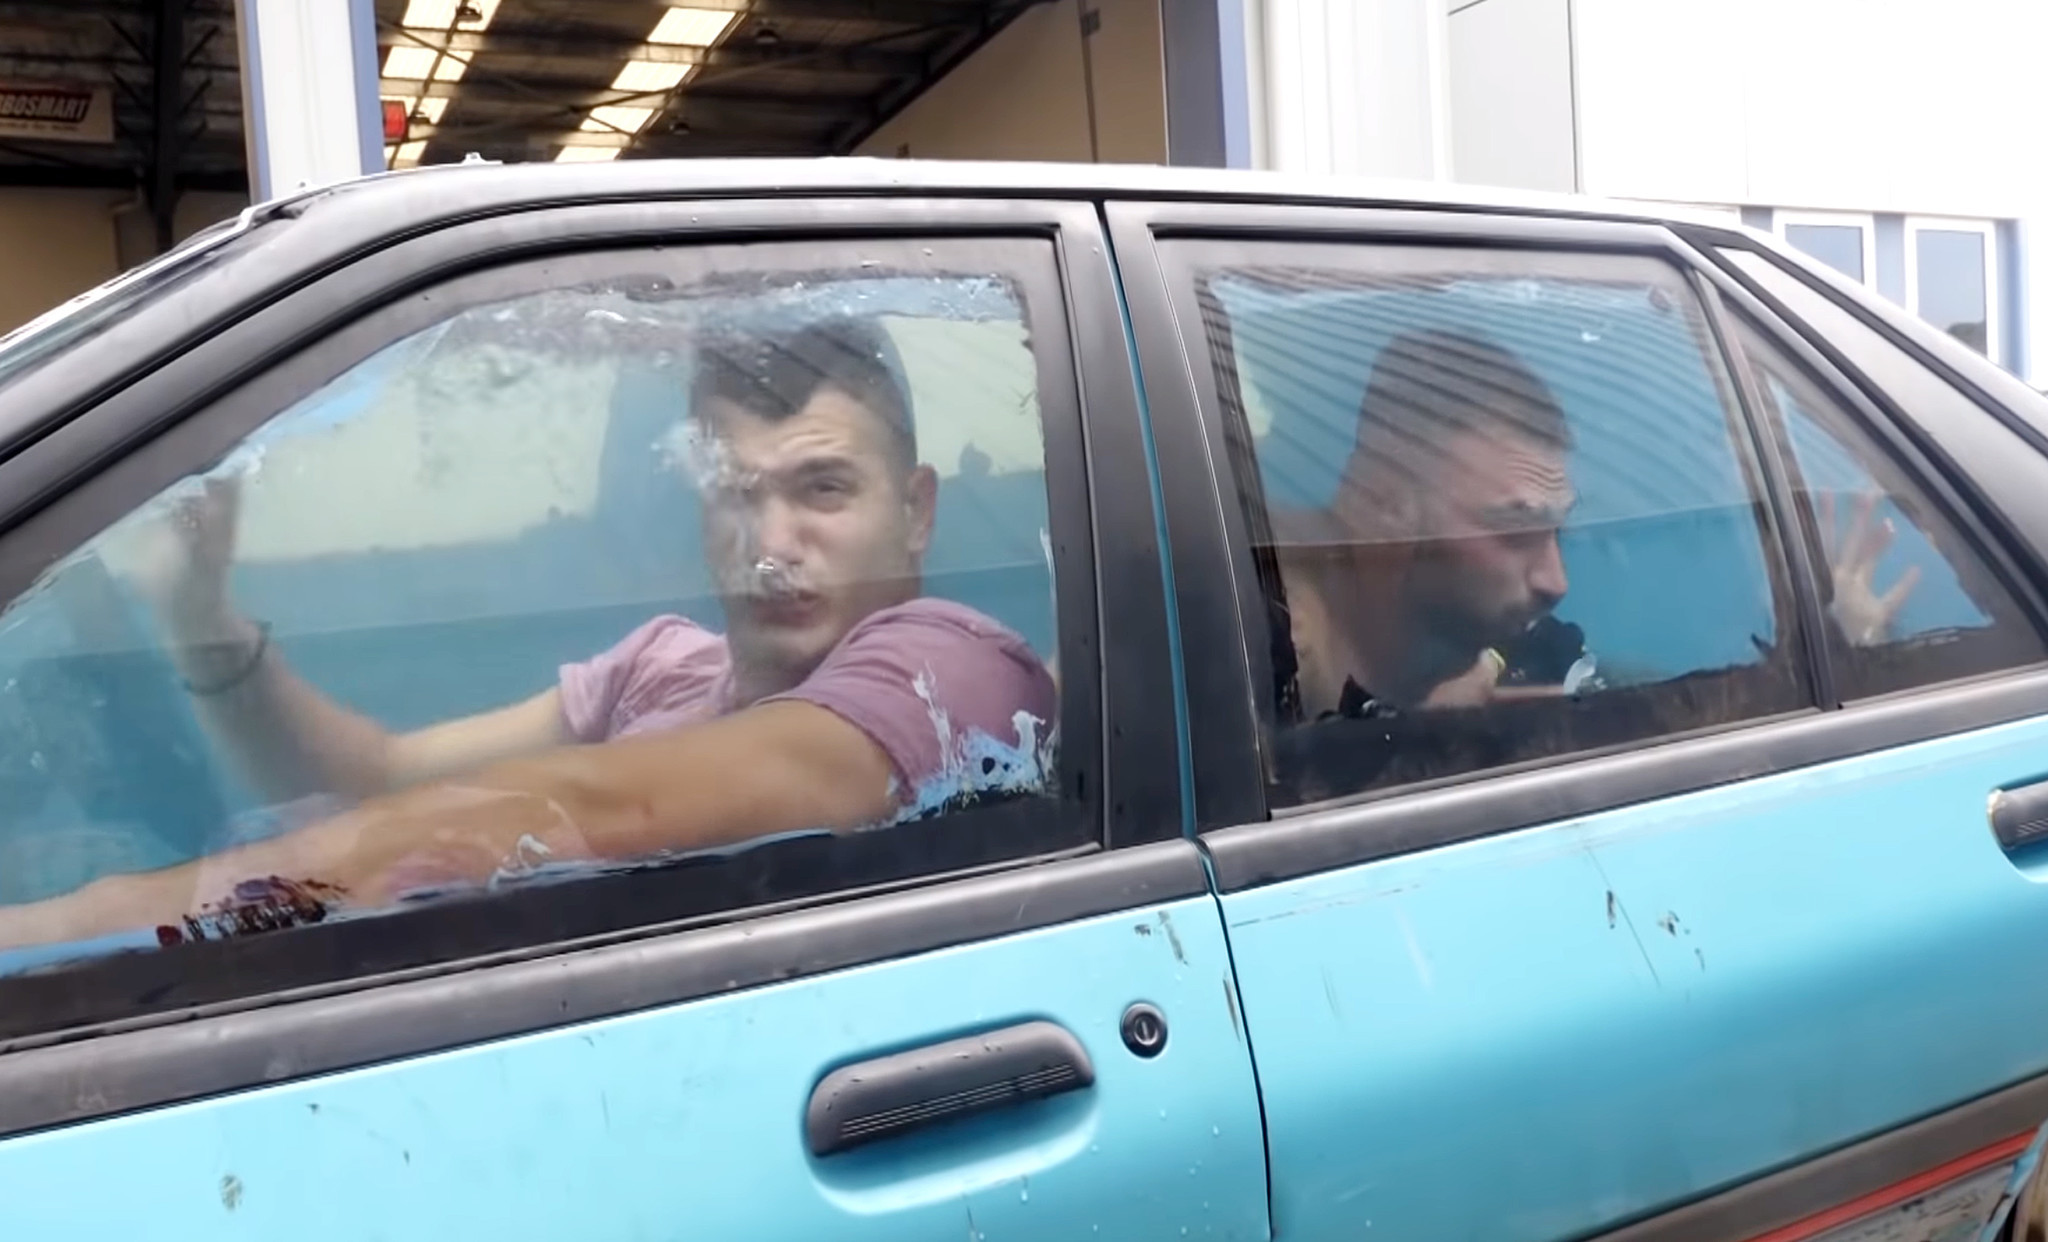 Australian prankster who drove water-filled car 'confident as always' during court appearance